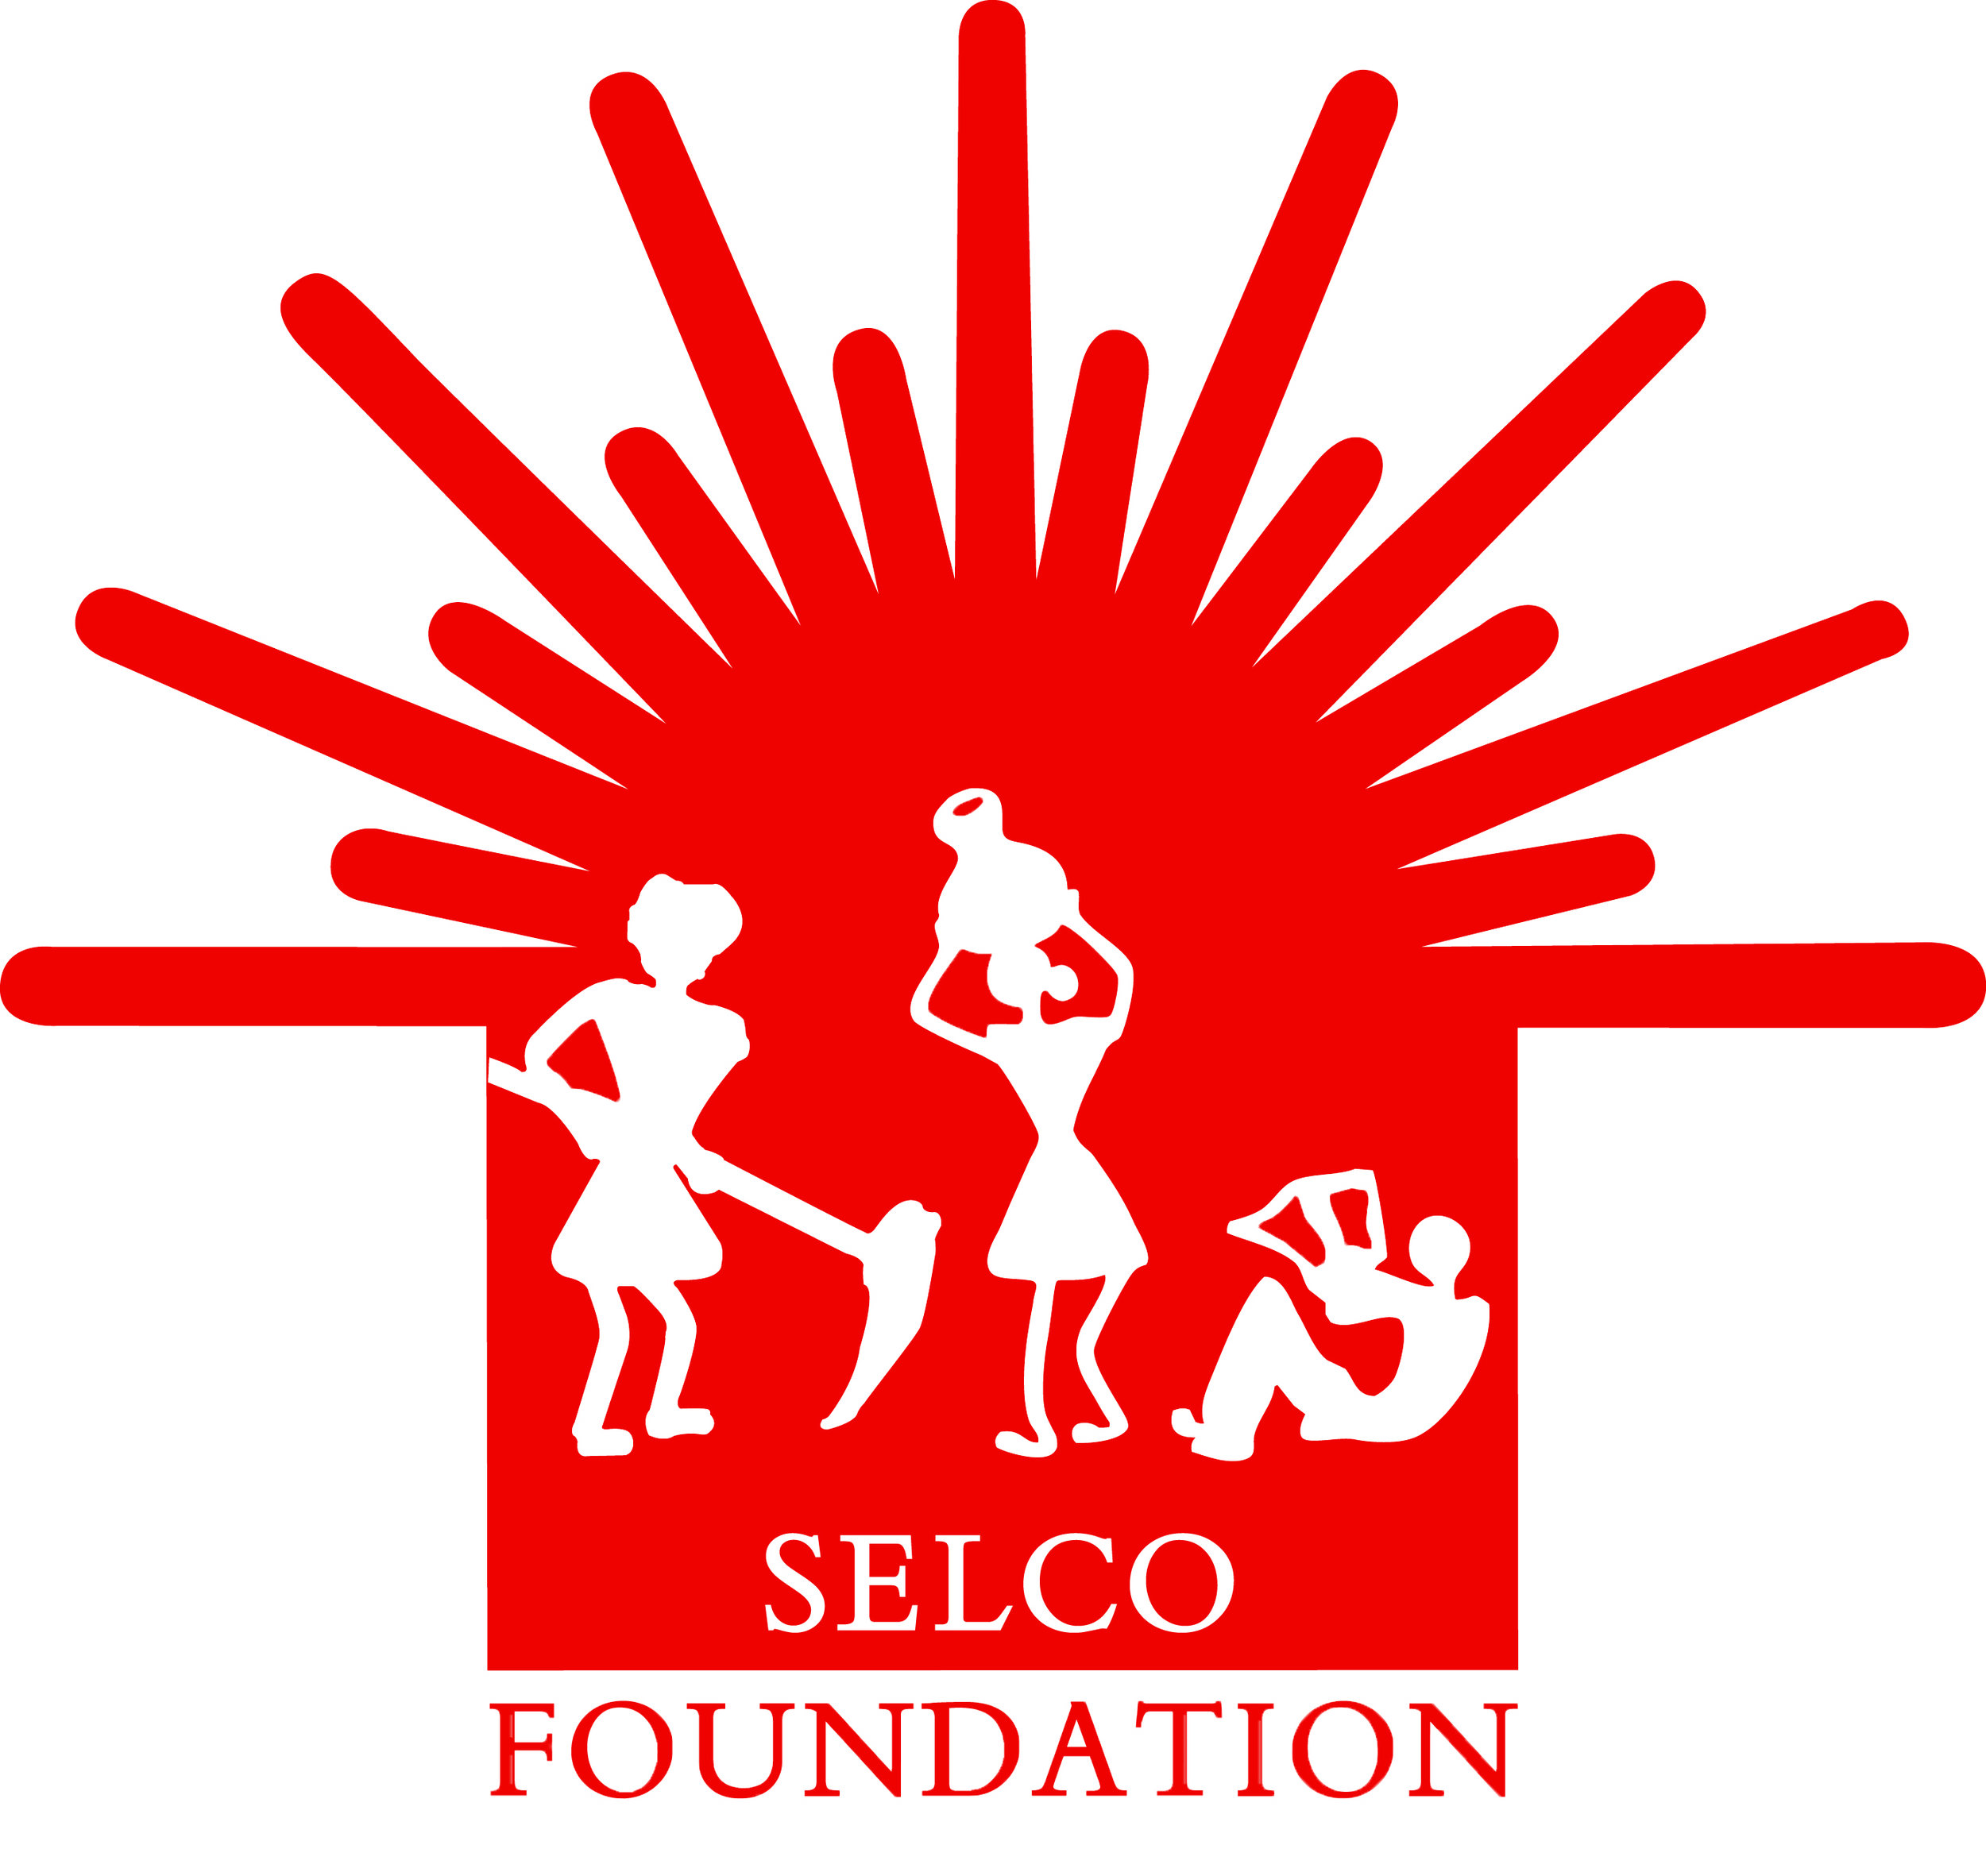 SELCO_Foundation.jpg